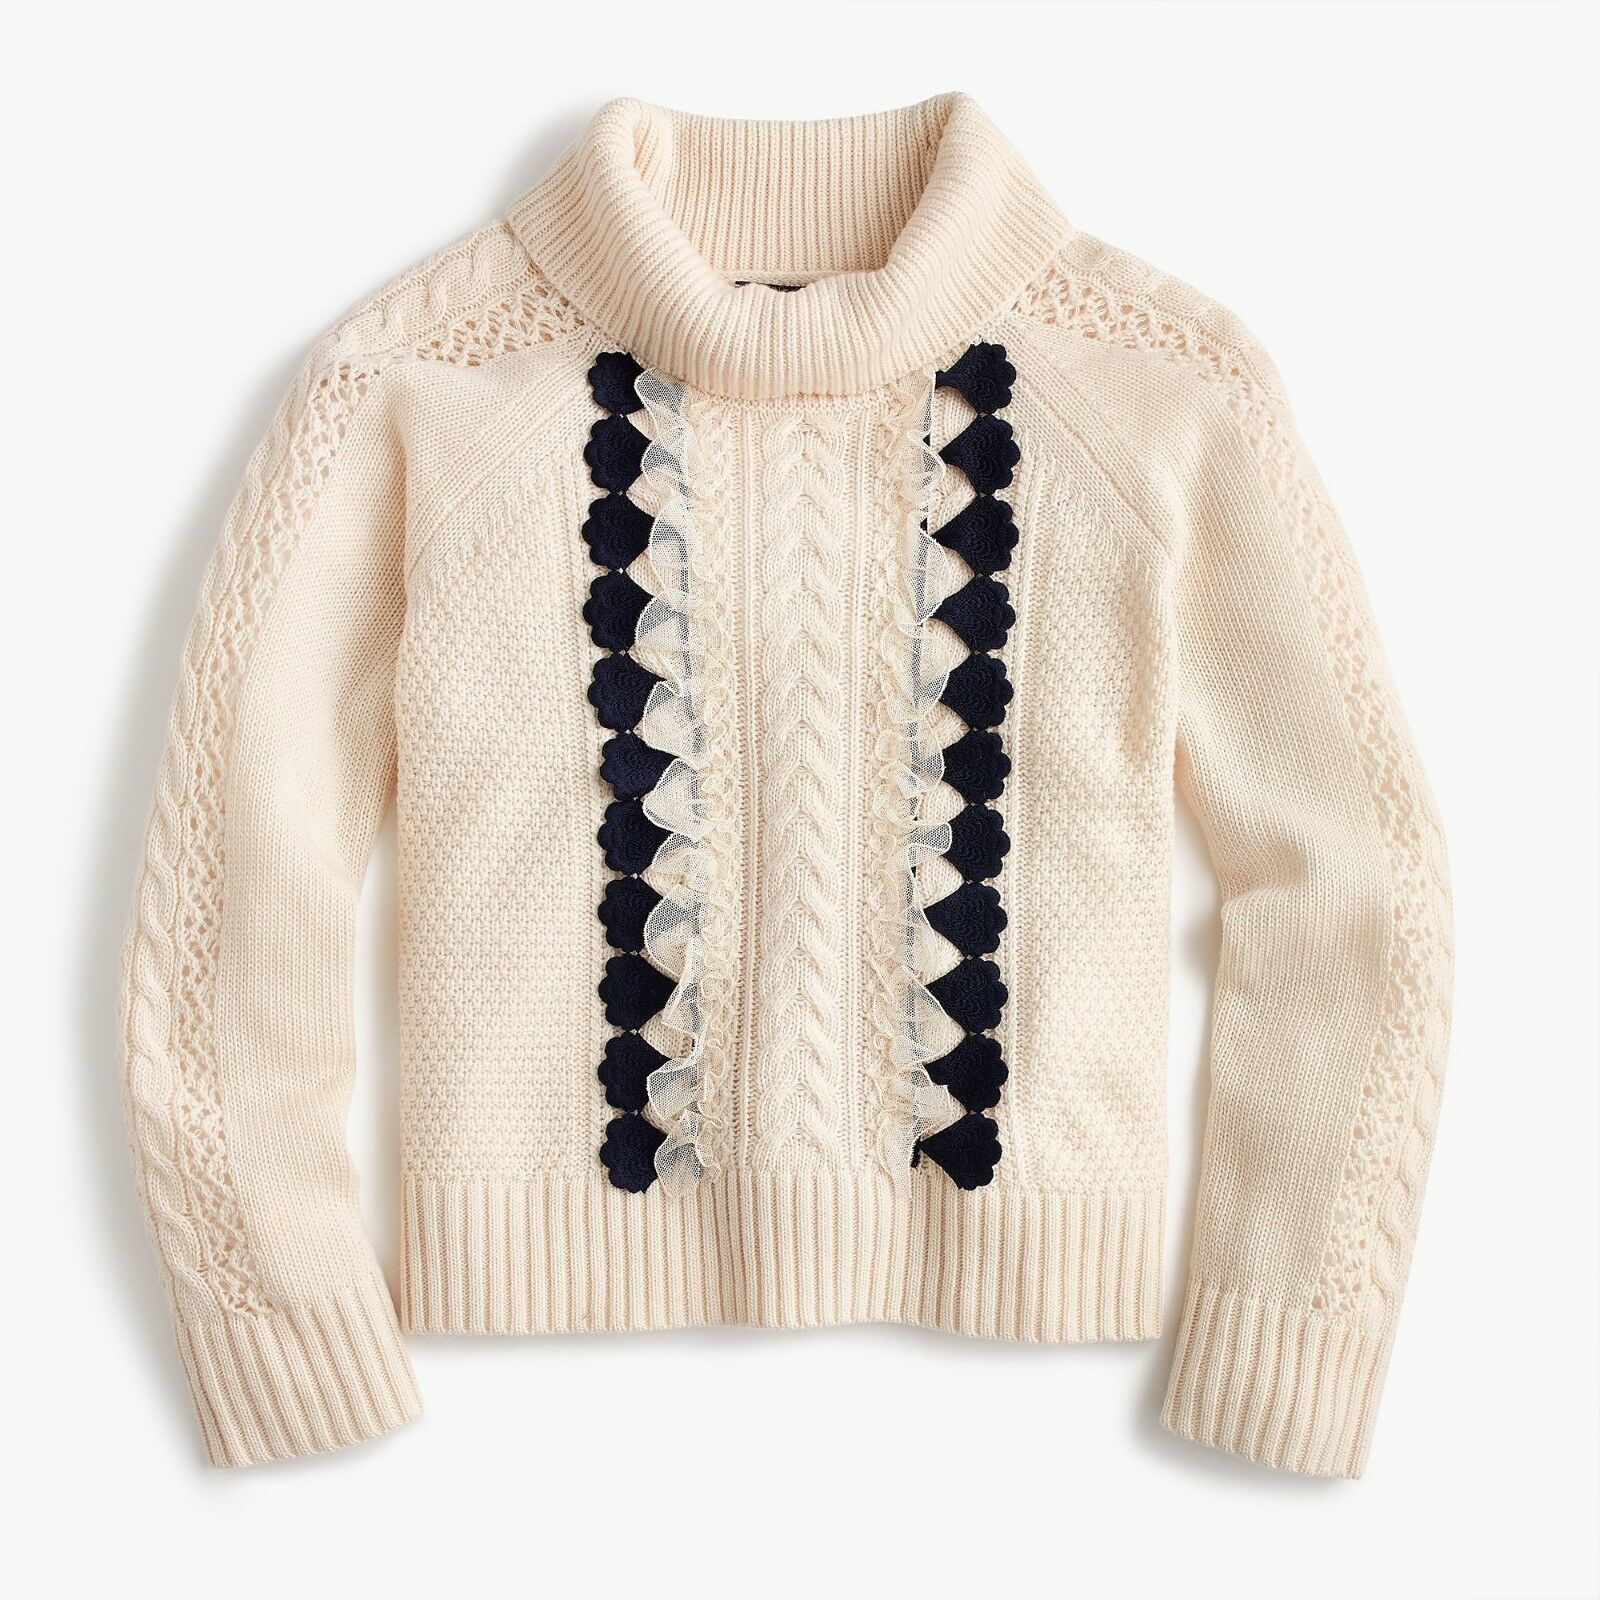 NWT J.Crew Embellished Cable Sweater Medium